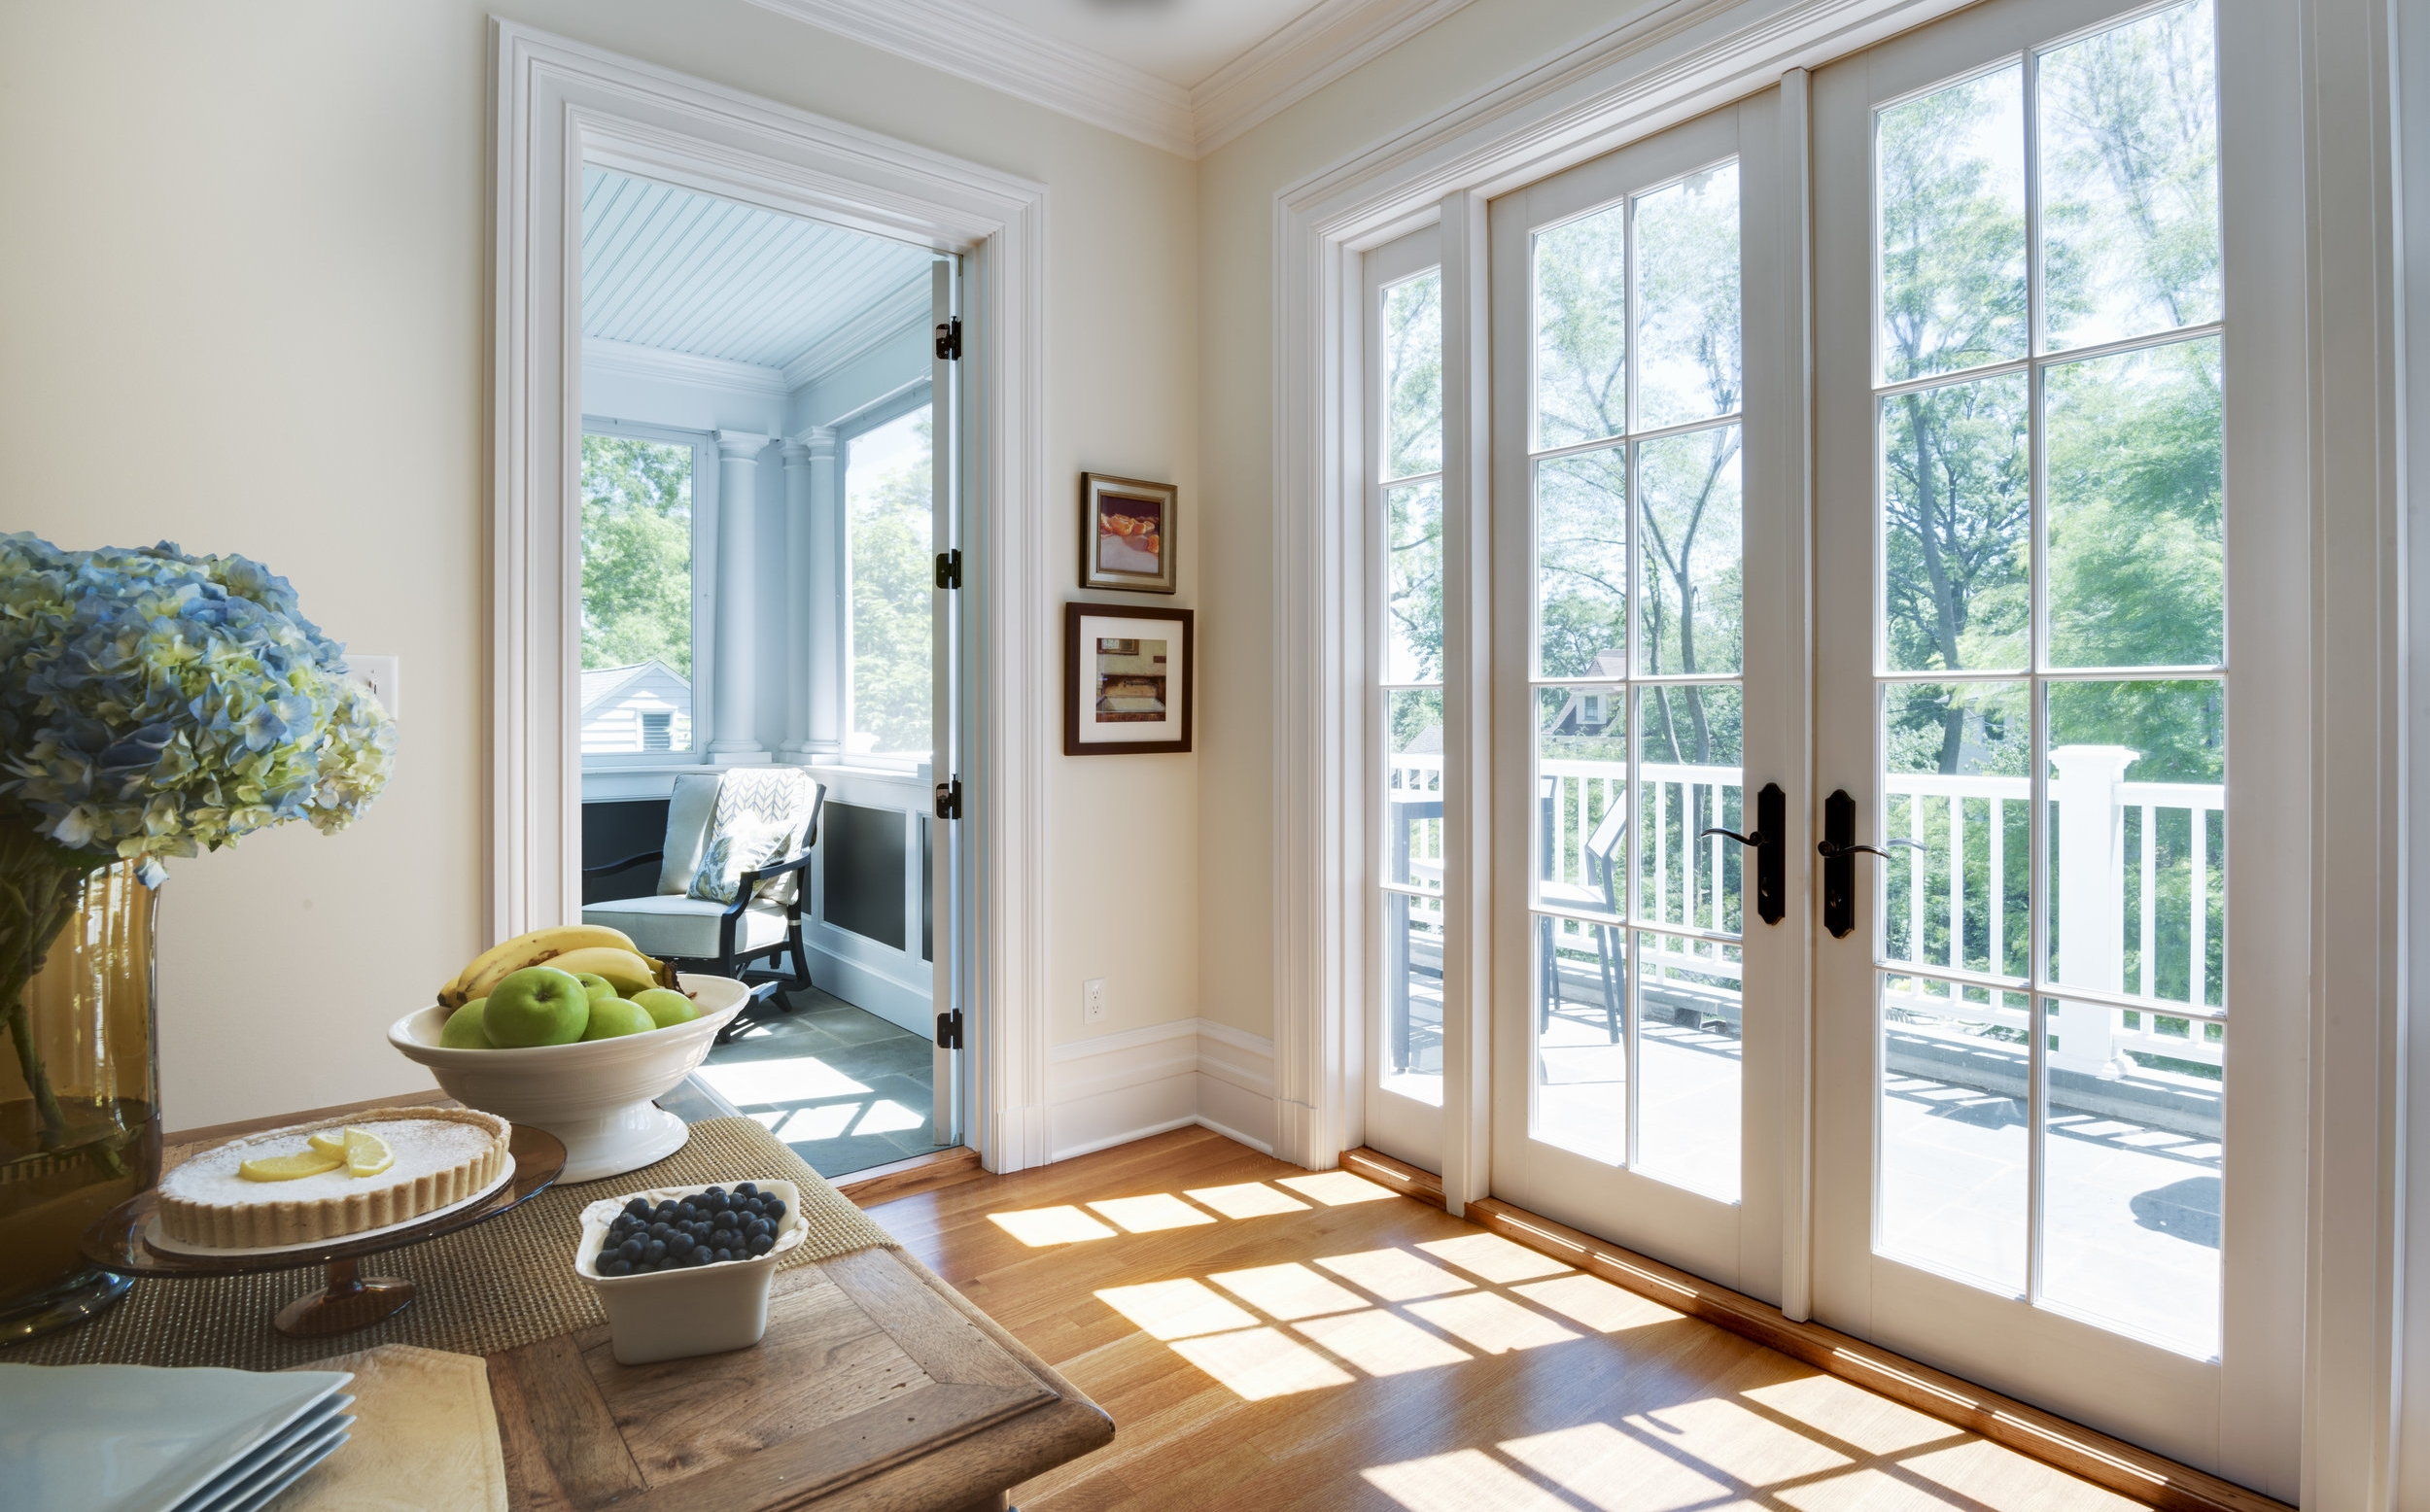 Casual Dining off the renovated kitchen with access to the terrace and screened porch. Natural light pours in.